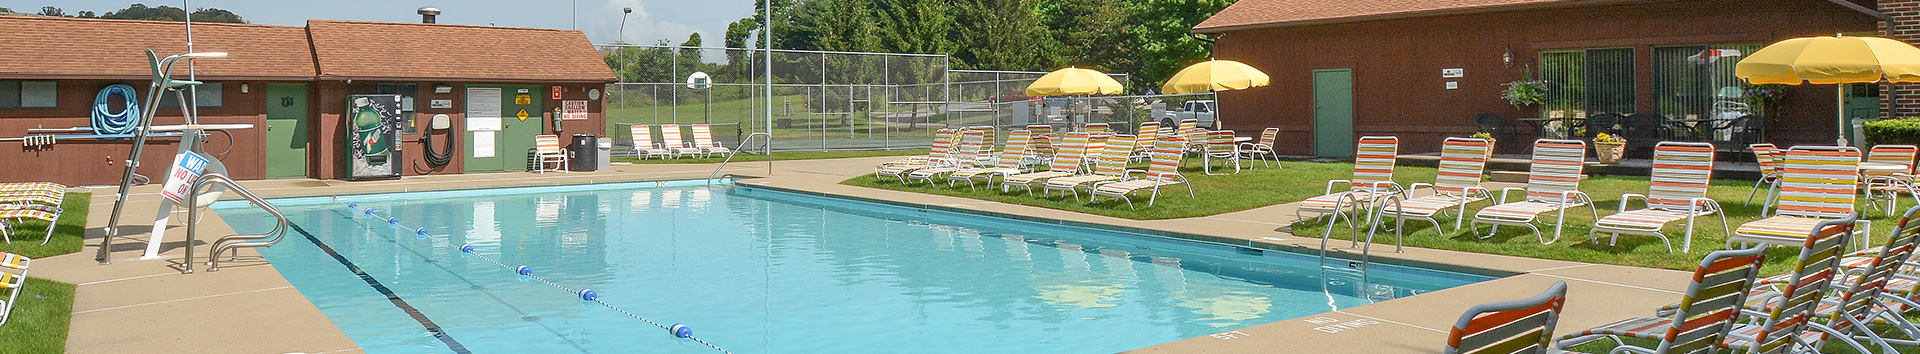 Swimming Pool of Pikeview Manor Apartments at Manor Communities, Beckley/West Virginia